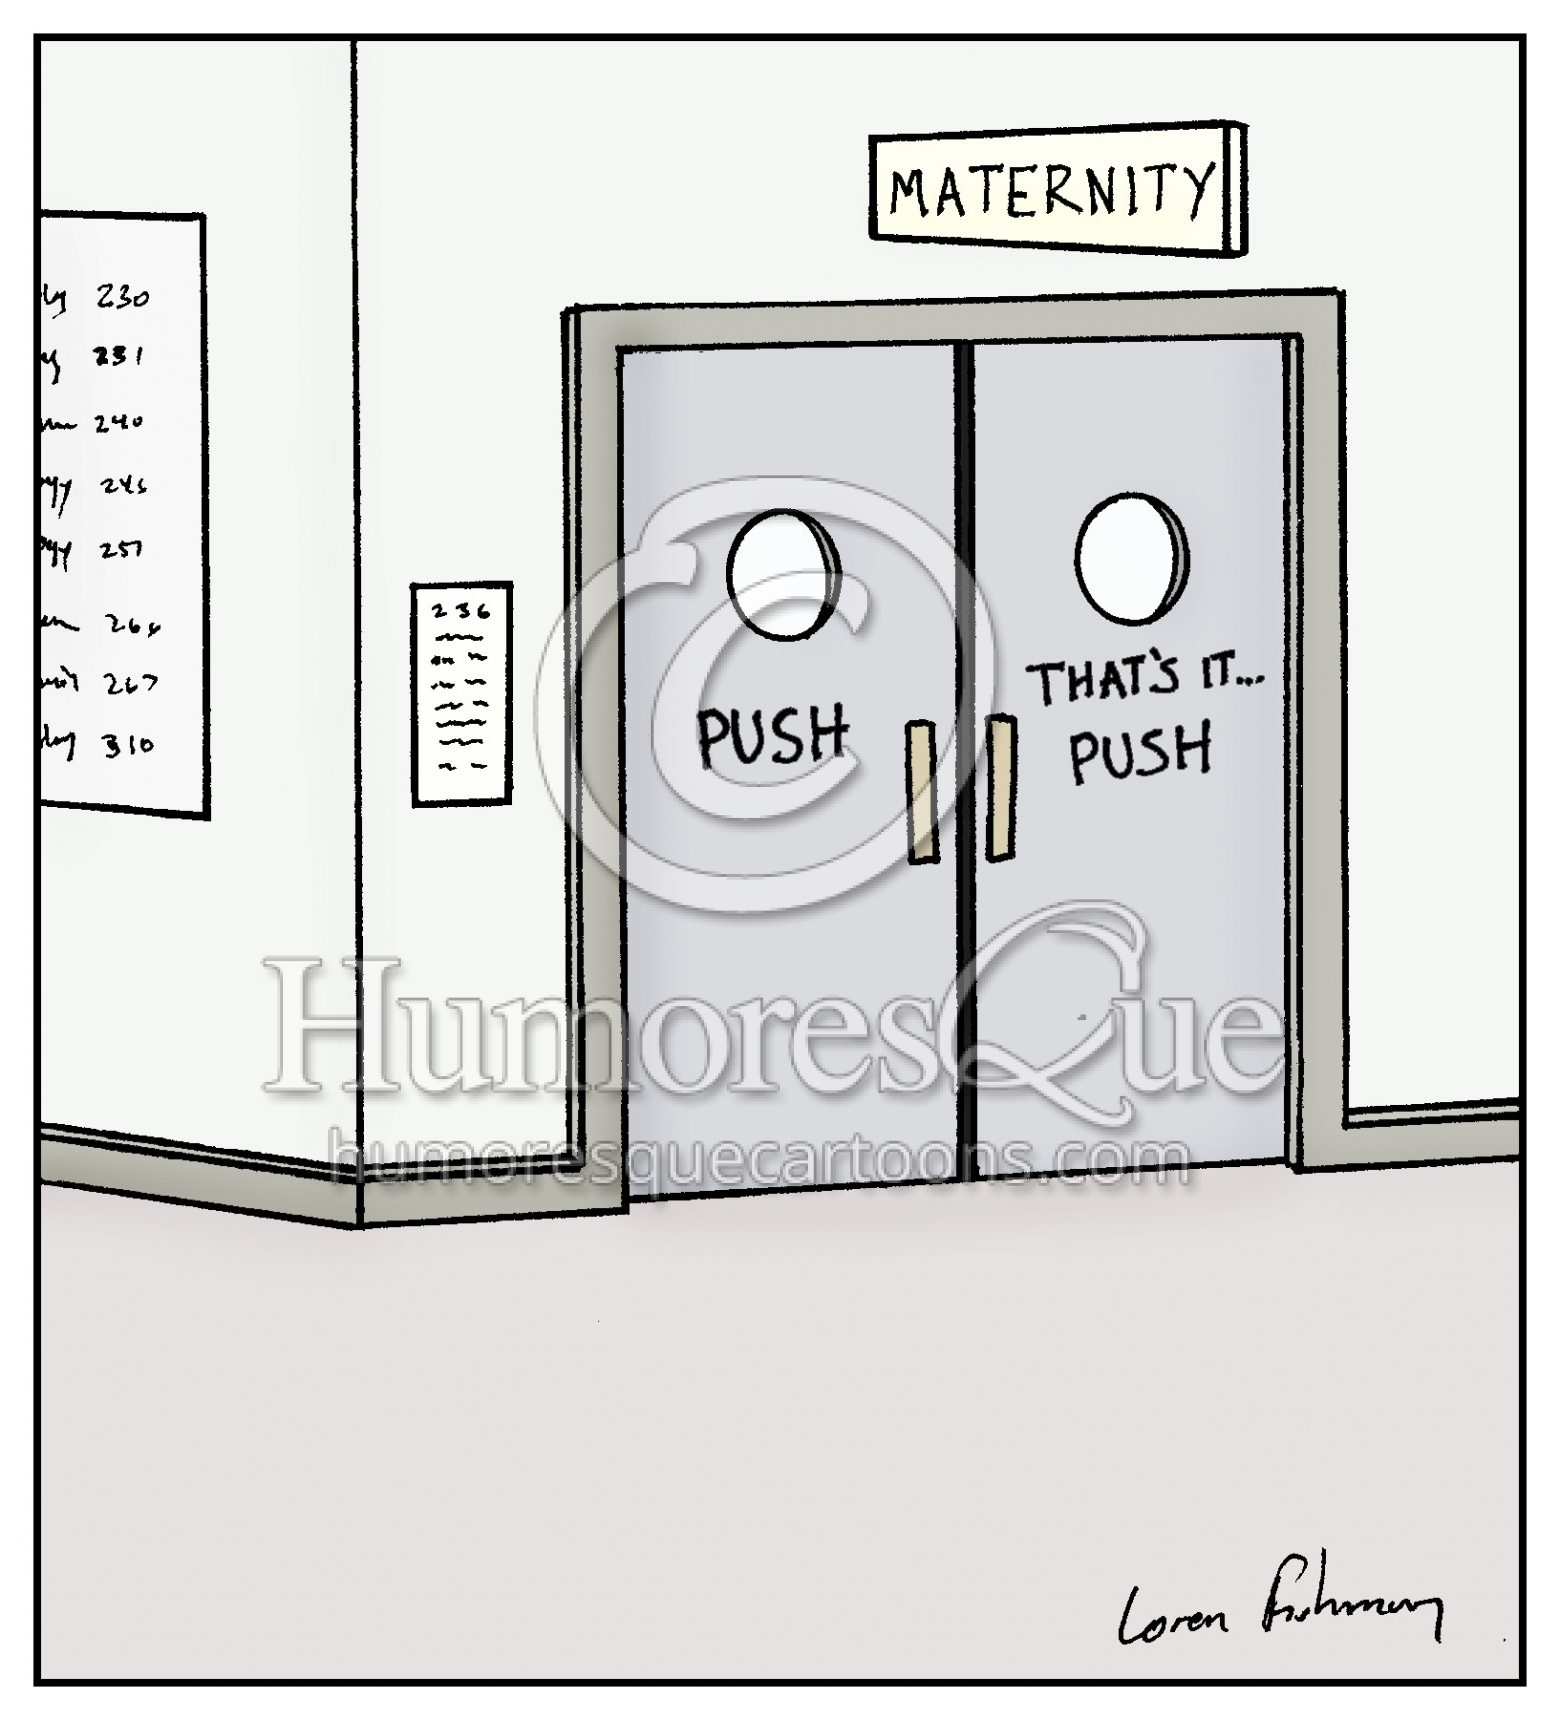 maternity doors pregnancy hospital cartoon